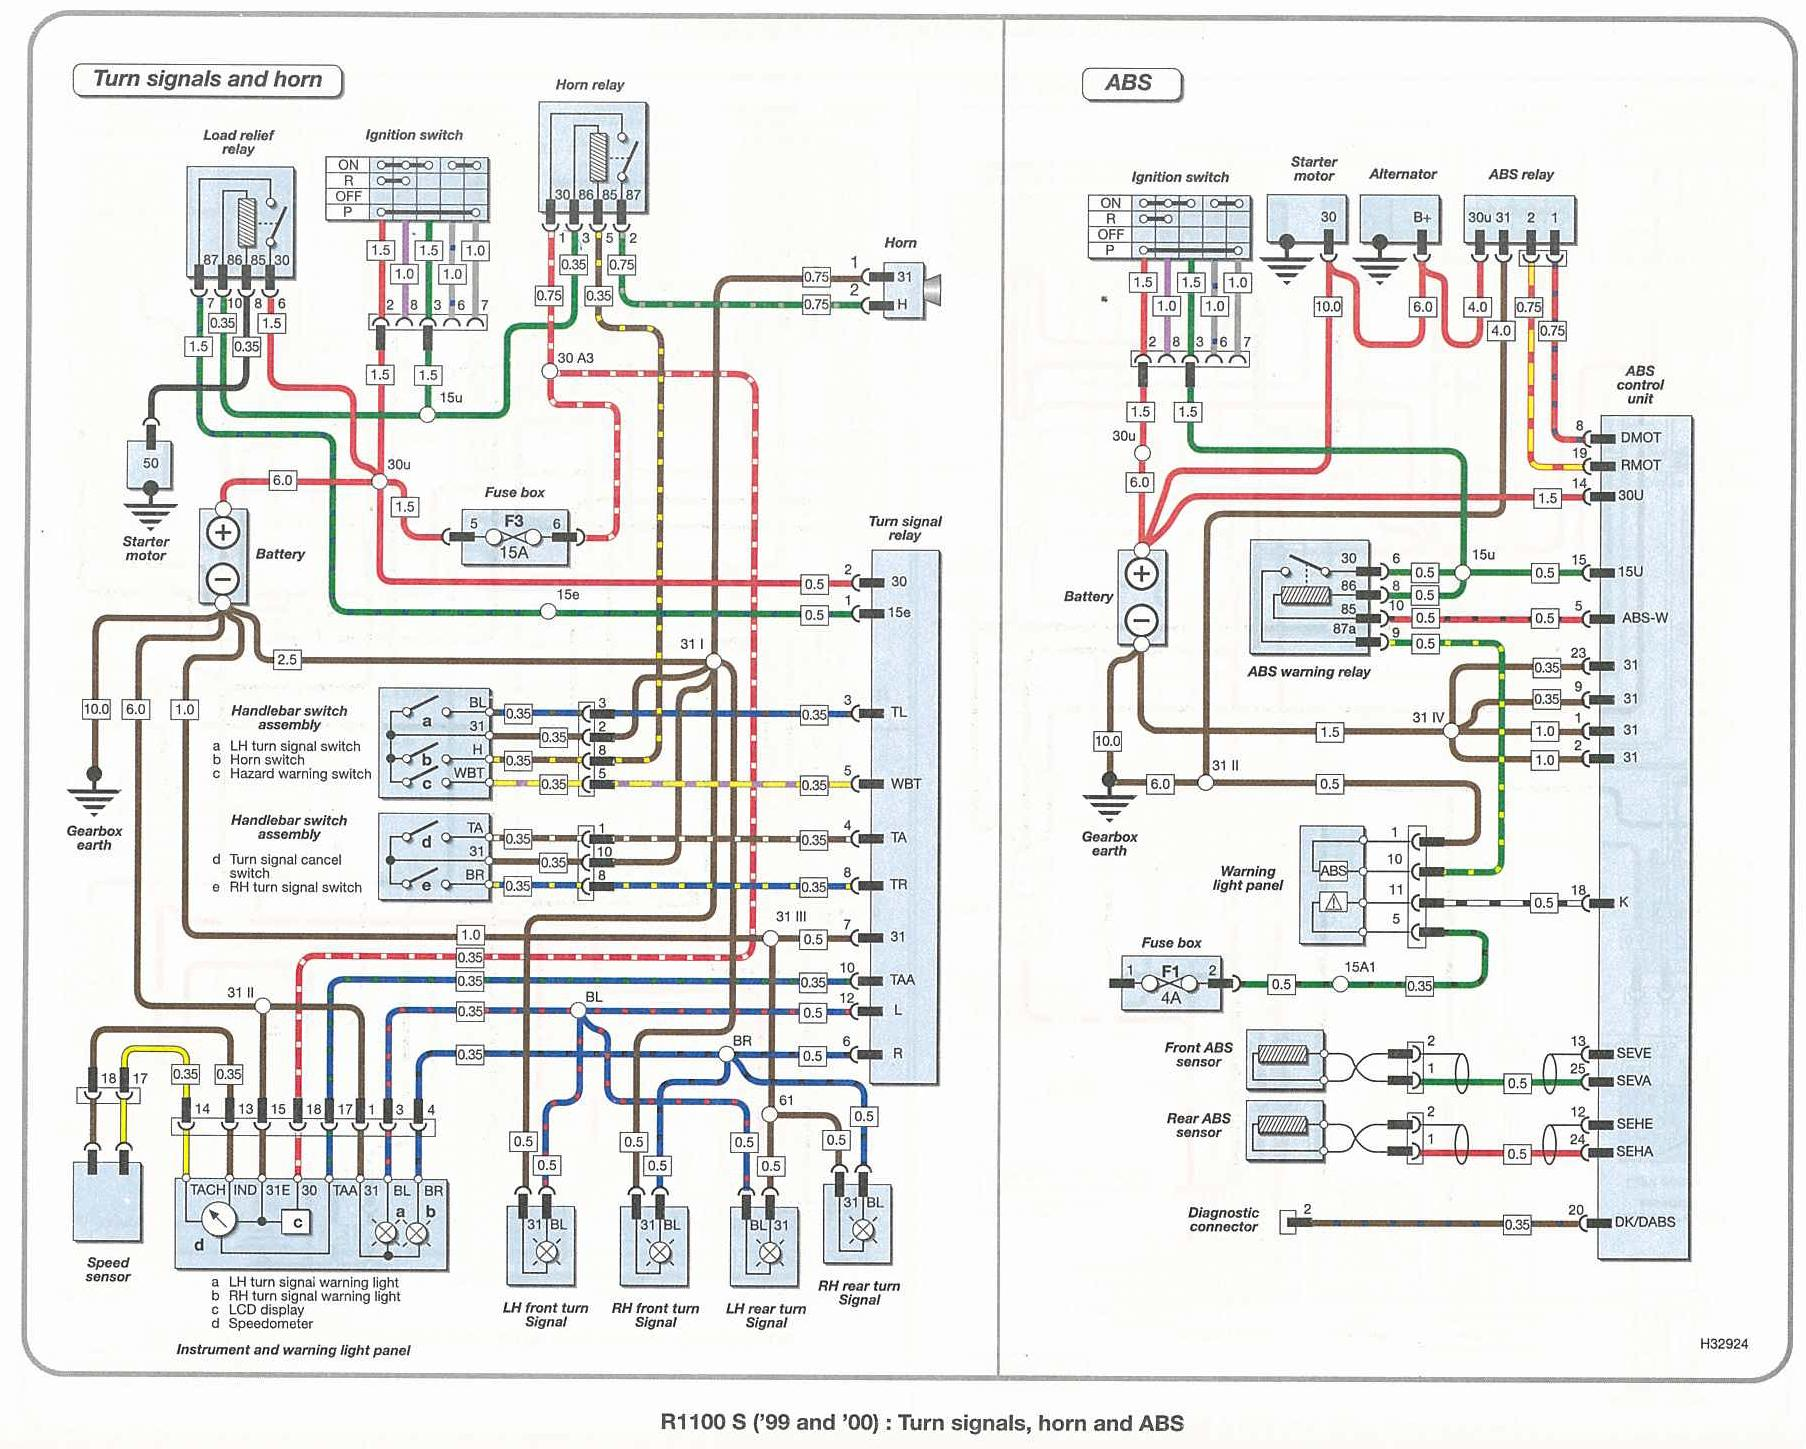 wiring03 bmw r1100s wiring diagrams bmw e60 wiring diagram pdf at gsmx.co